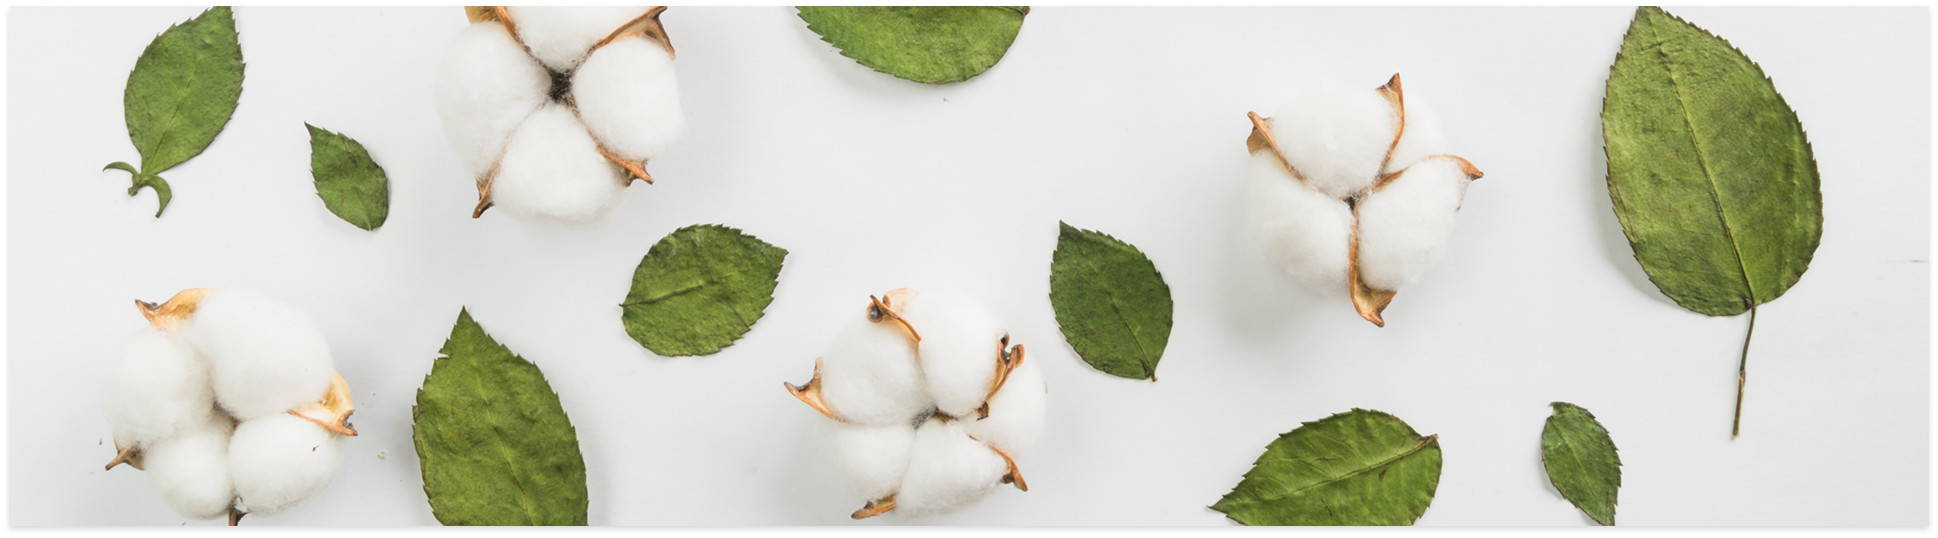 sleep zone bedding   website store products pages cottonnest cotton with leaves